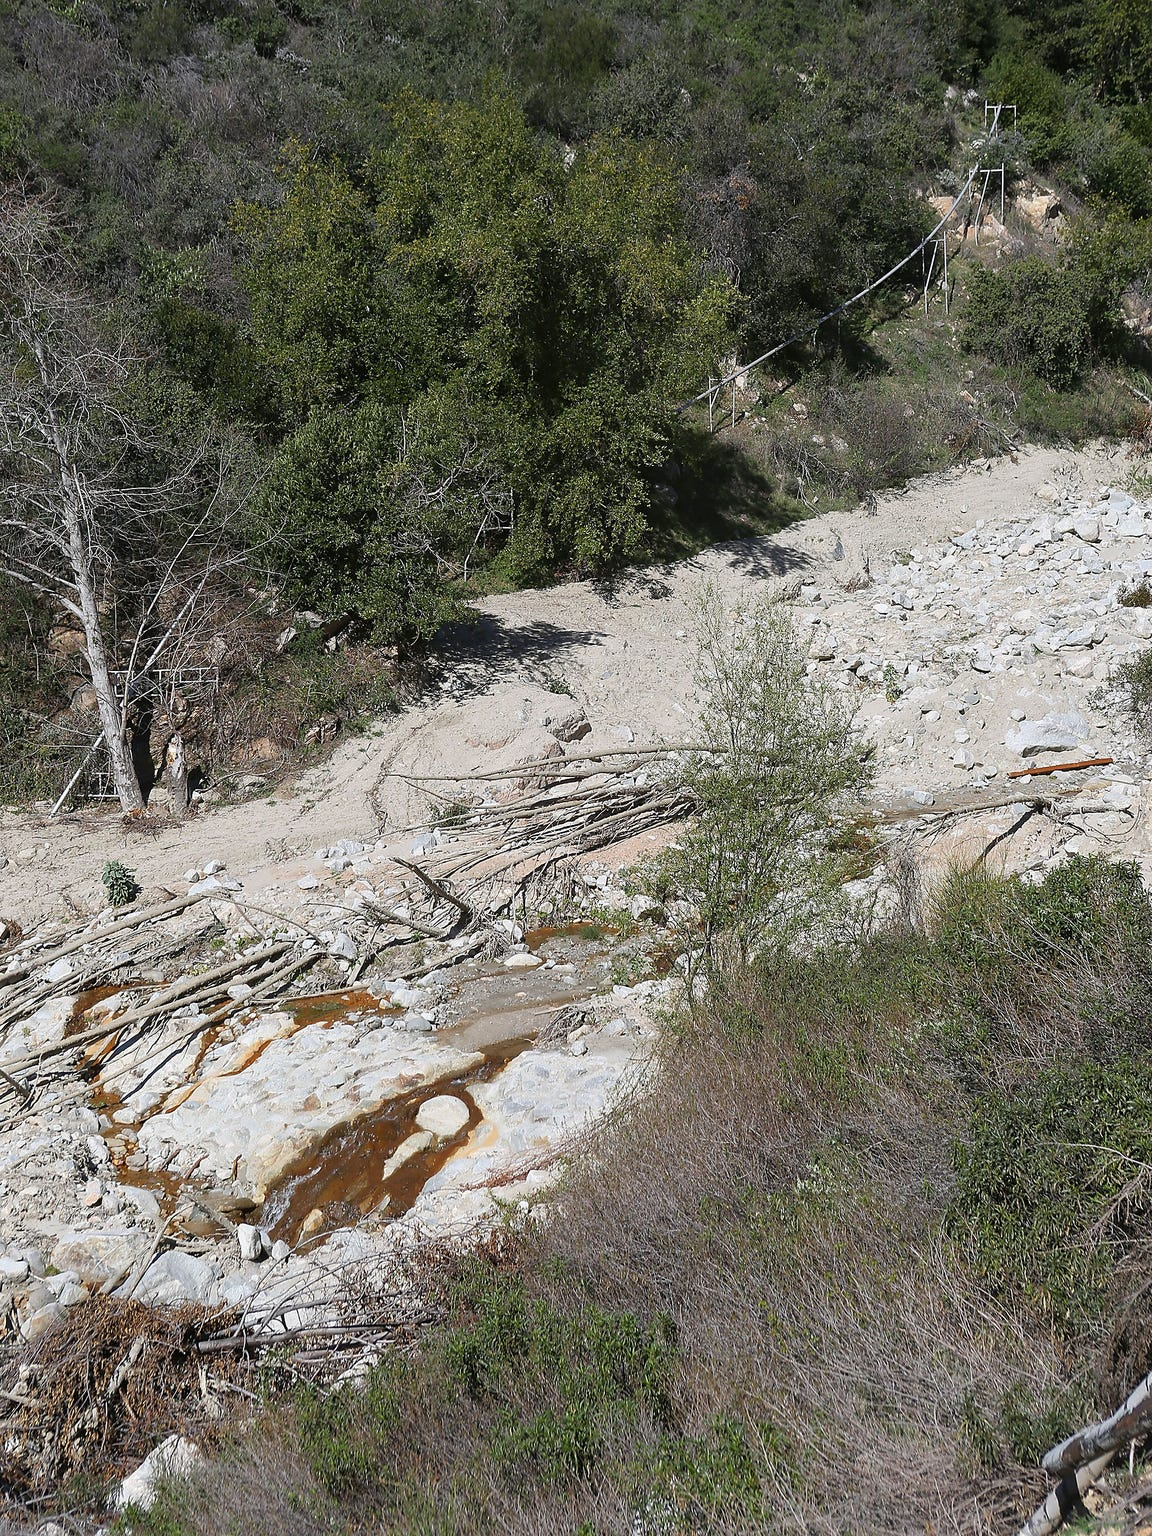 A water pipeline runs alongside Strawberry Creek in the San Bernardino National Forest. The pipe carries water from Arrowhead Springs to be bottled by Nestle.